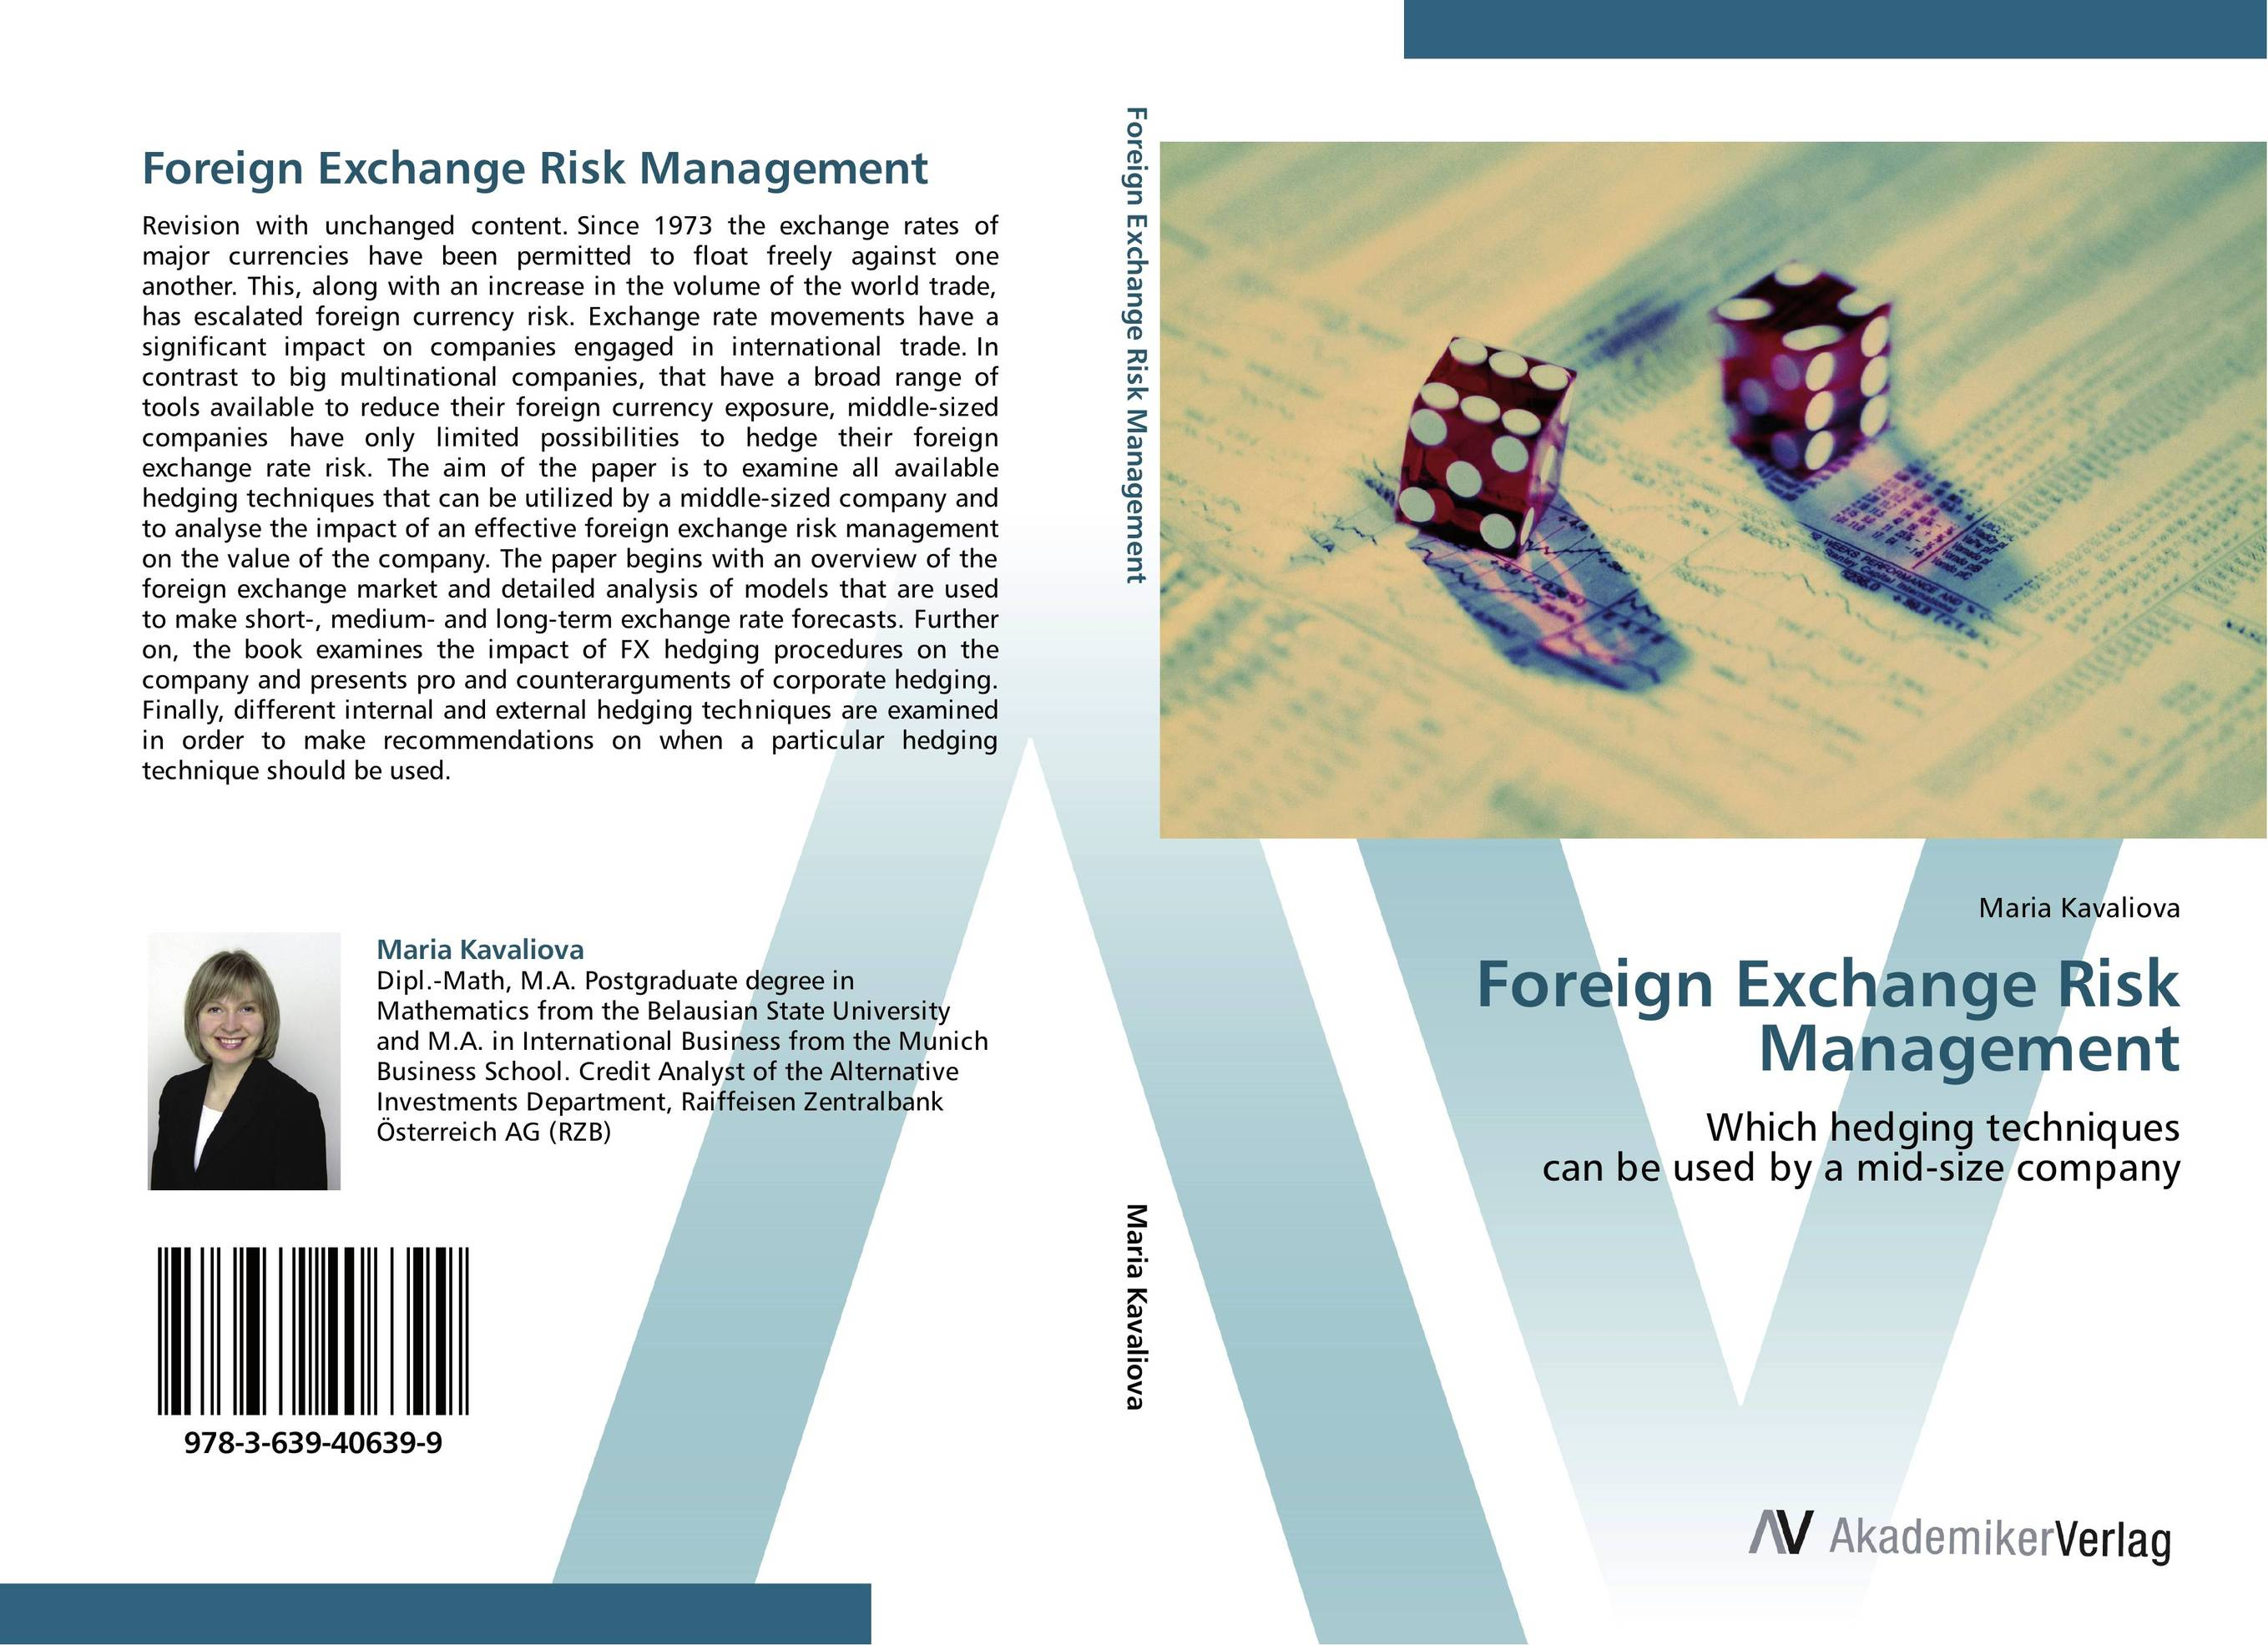 Foreign Exchange Risk Management moorad choudhry fixed income markets management trading and hedging